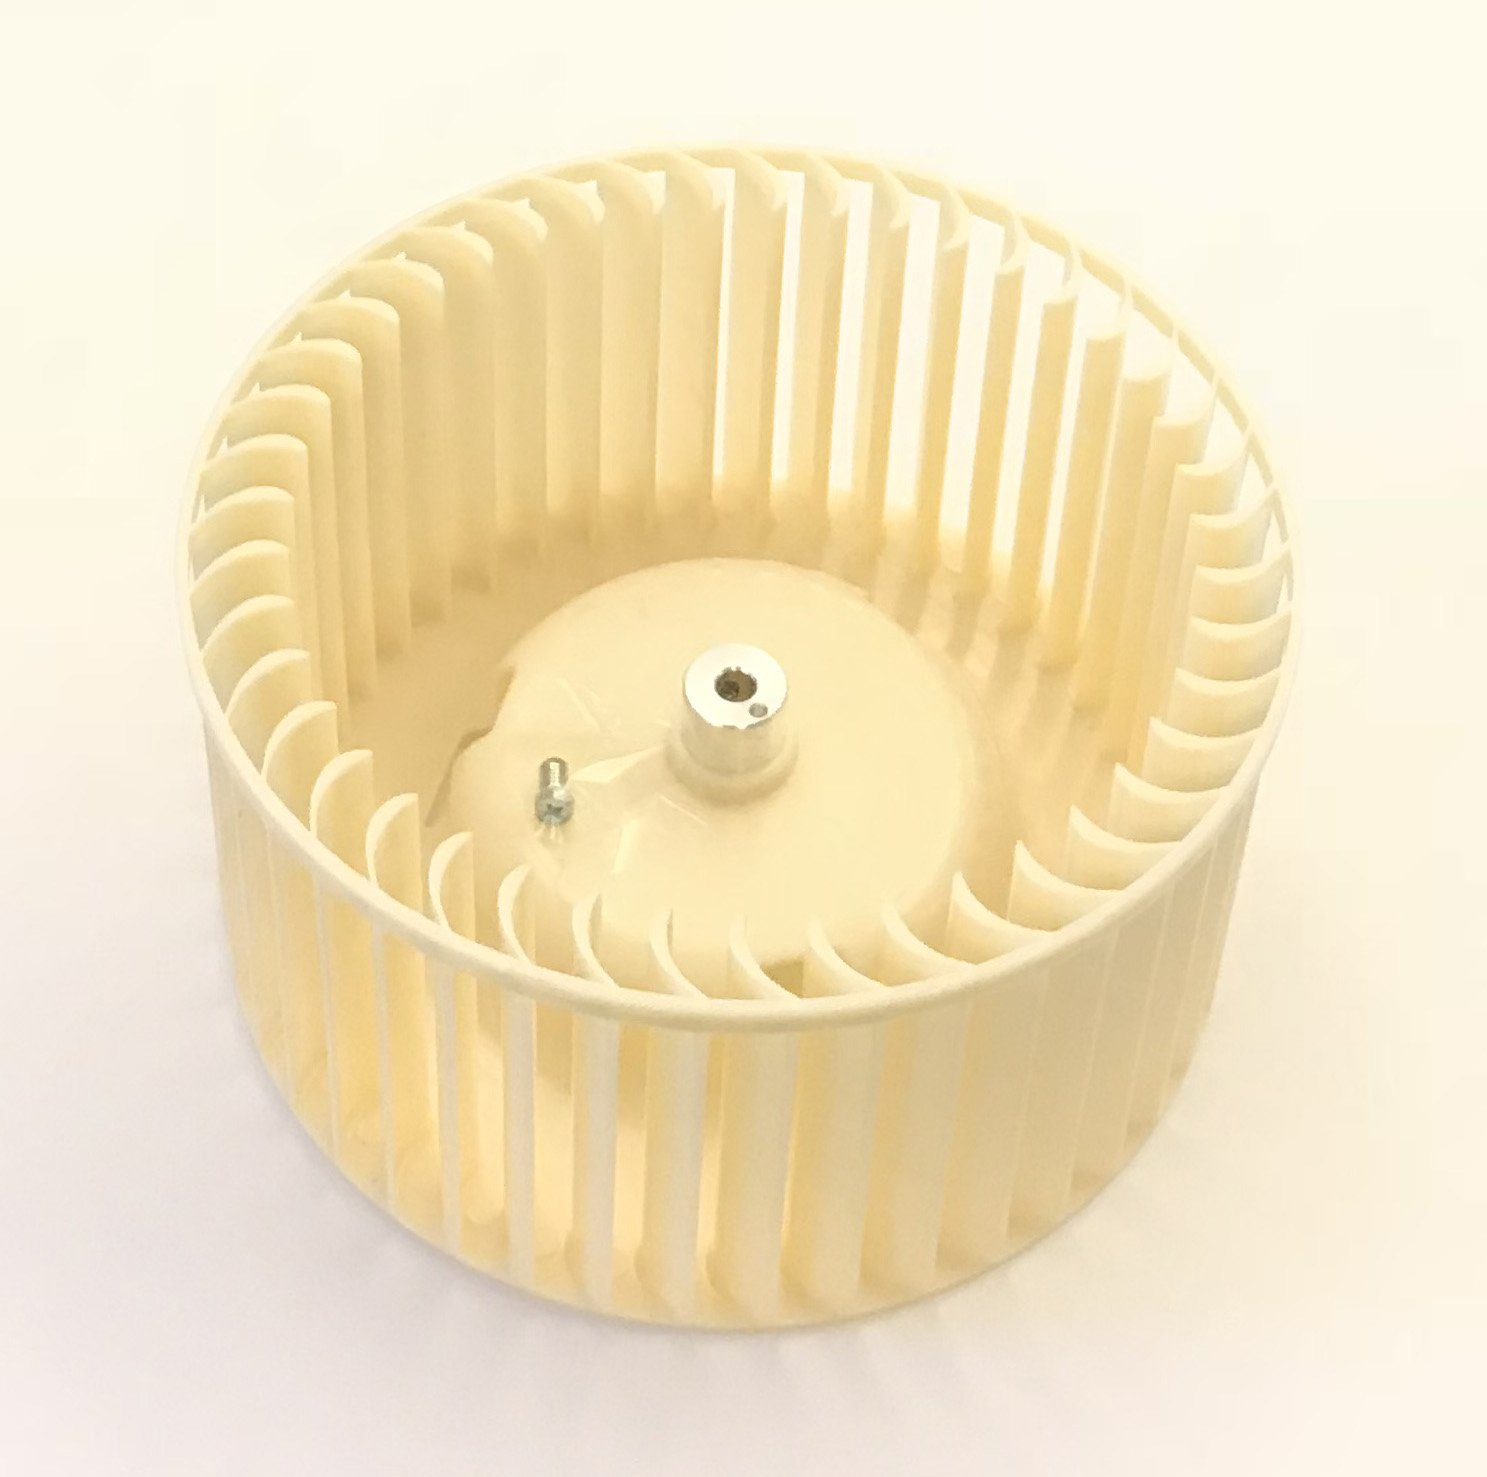 OEM Delonghi Air Conditioner Blower Fan Wheel Specifically For Delonghi PACAN140HPECB, PACN100E, PACAN140HPEC, PACN110EC